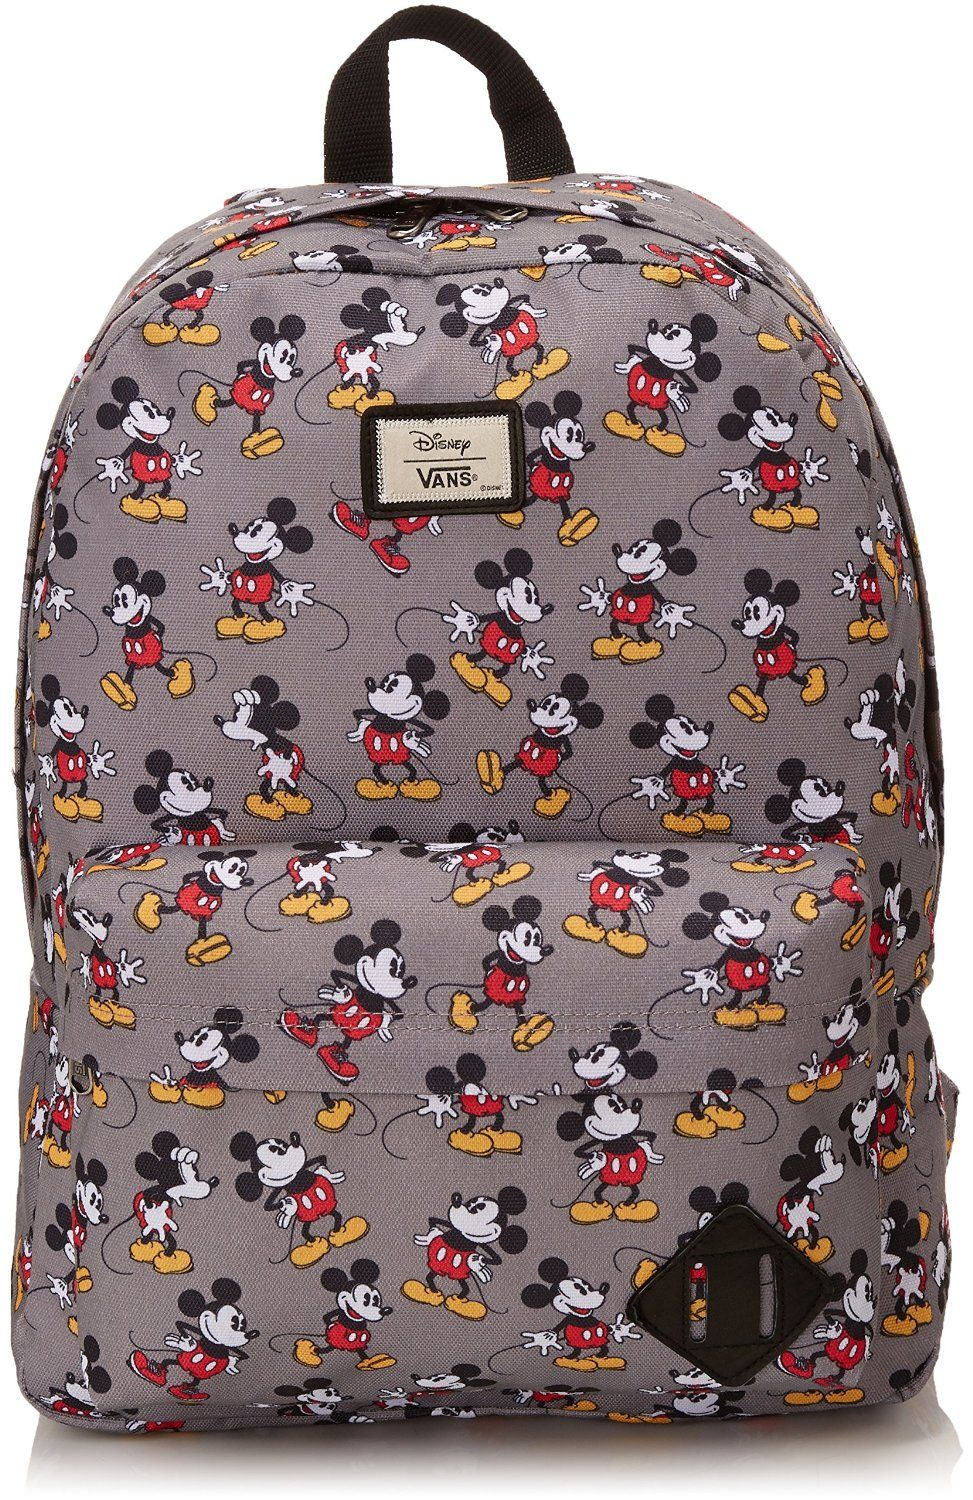 Mickey Mouse Donald Duck In Clothes